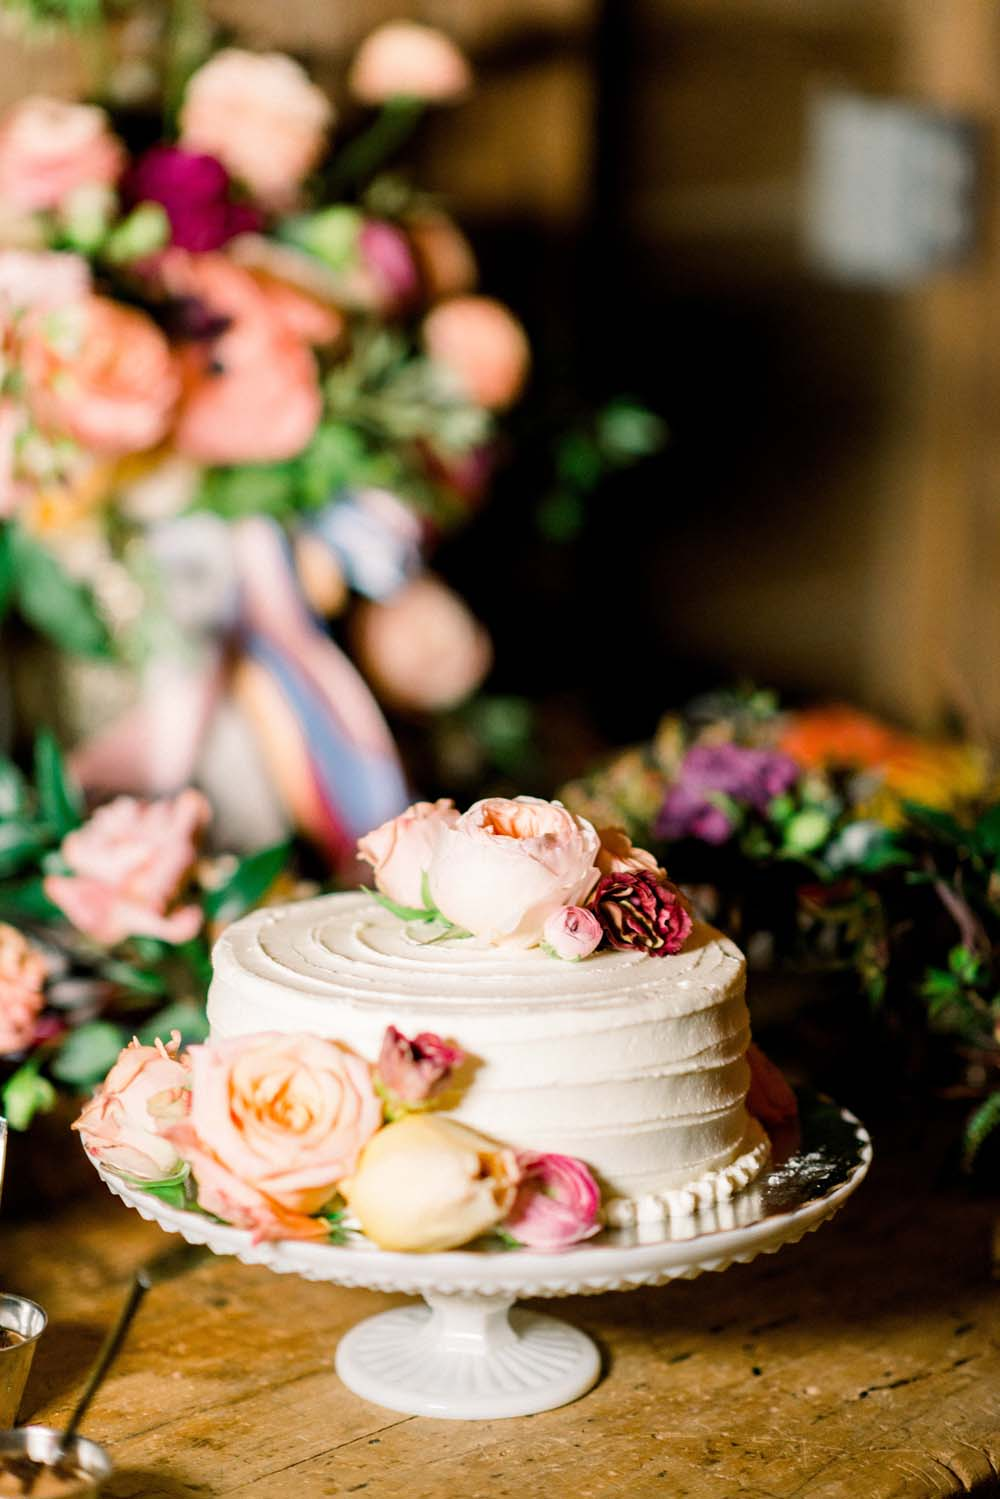 A Quirky Non-Traditional Wedding in Kitchener, Ontario - Cake